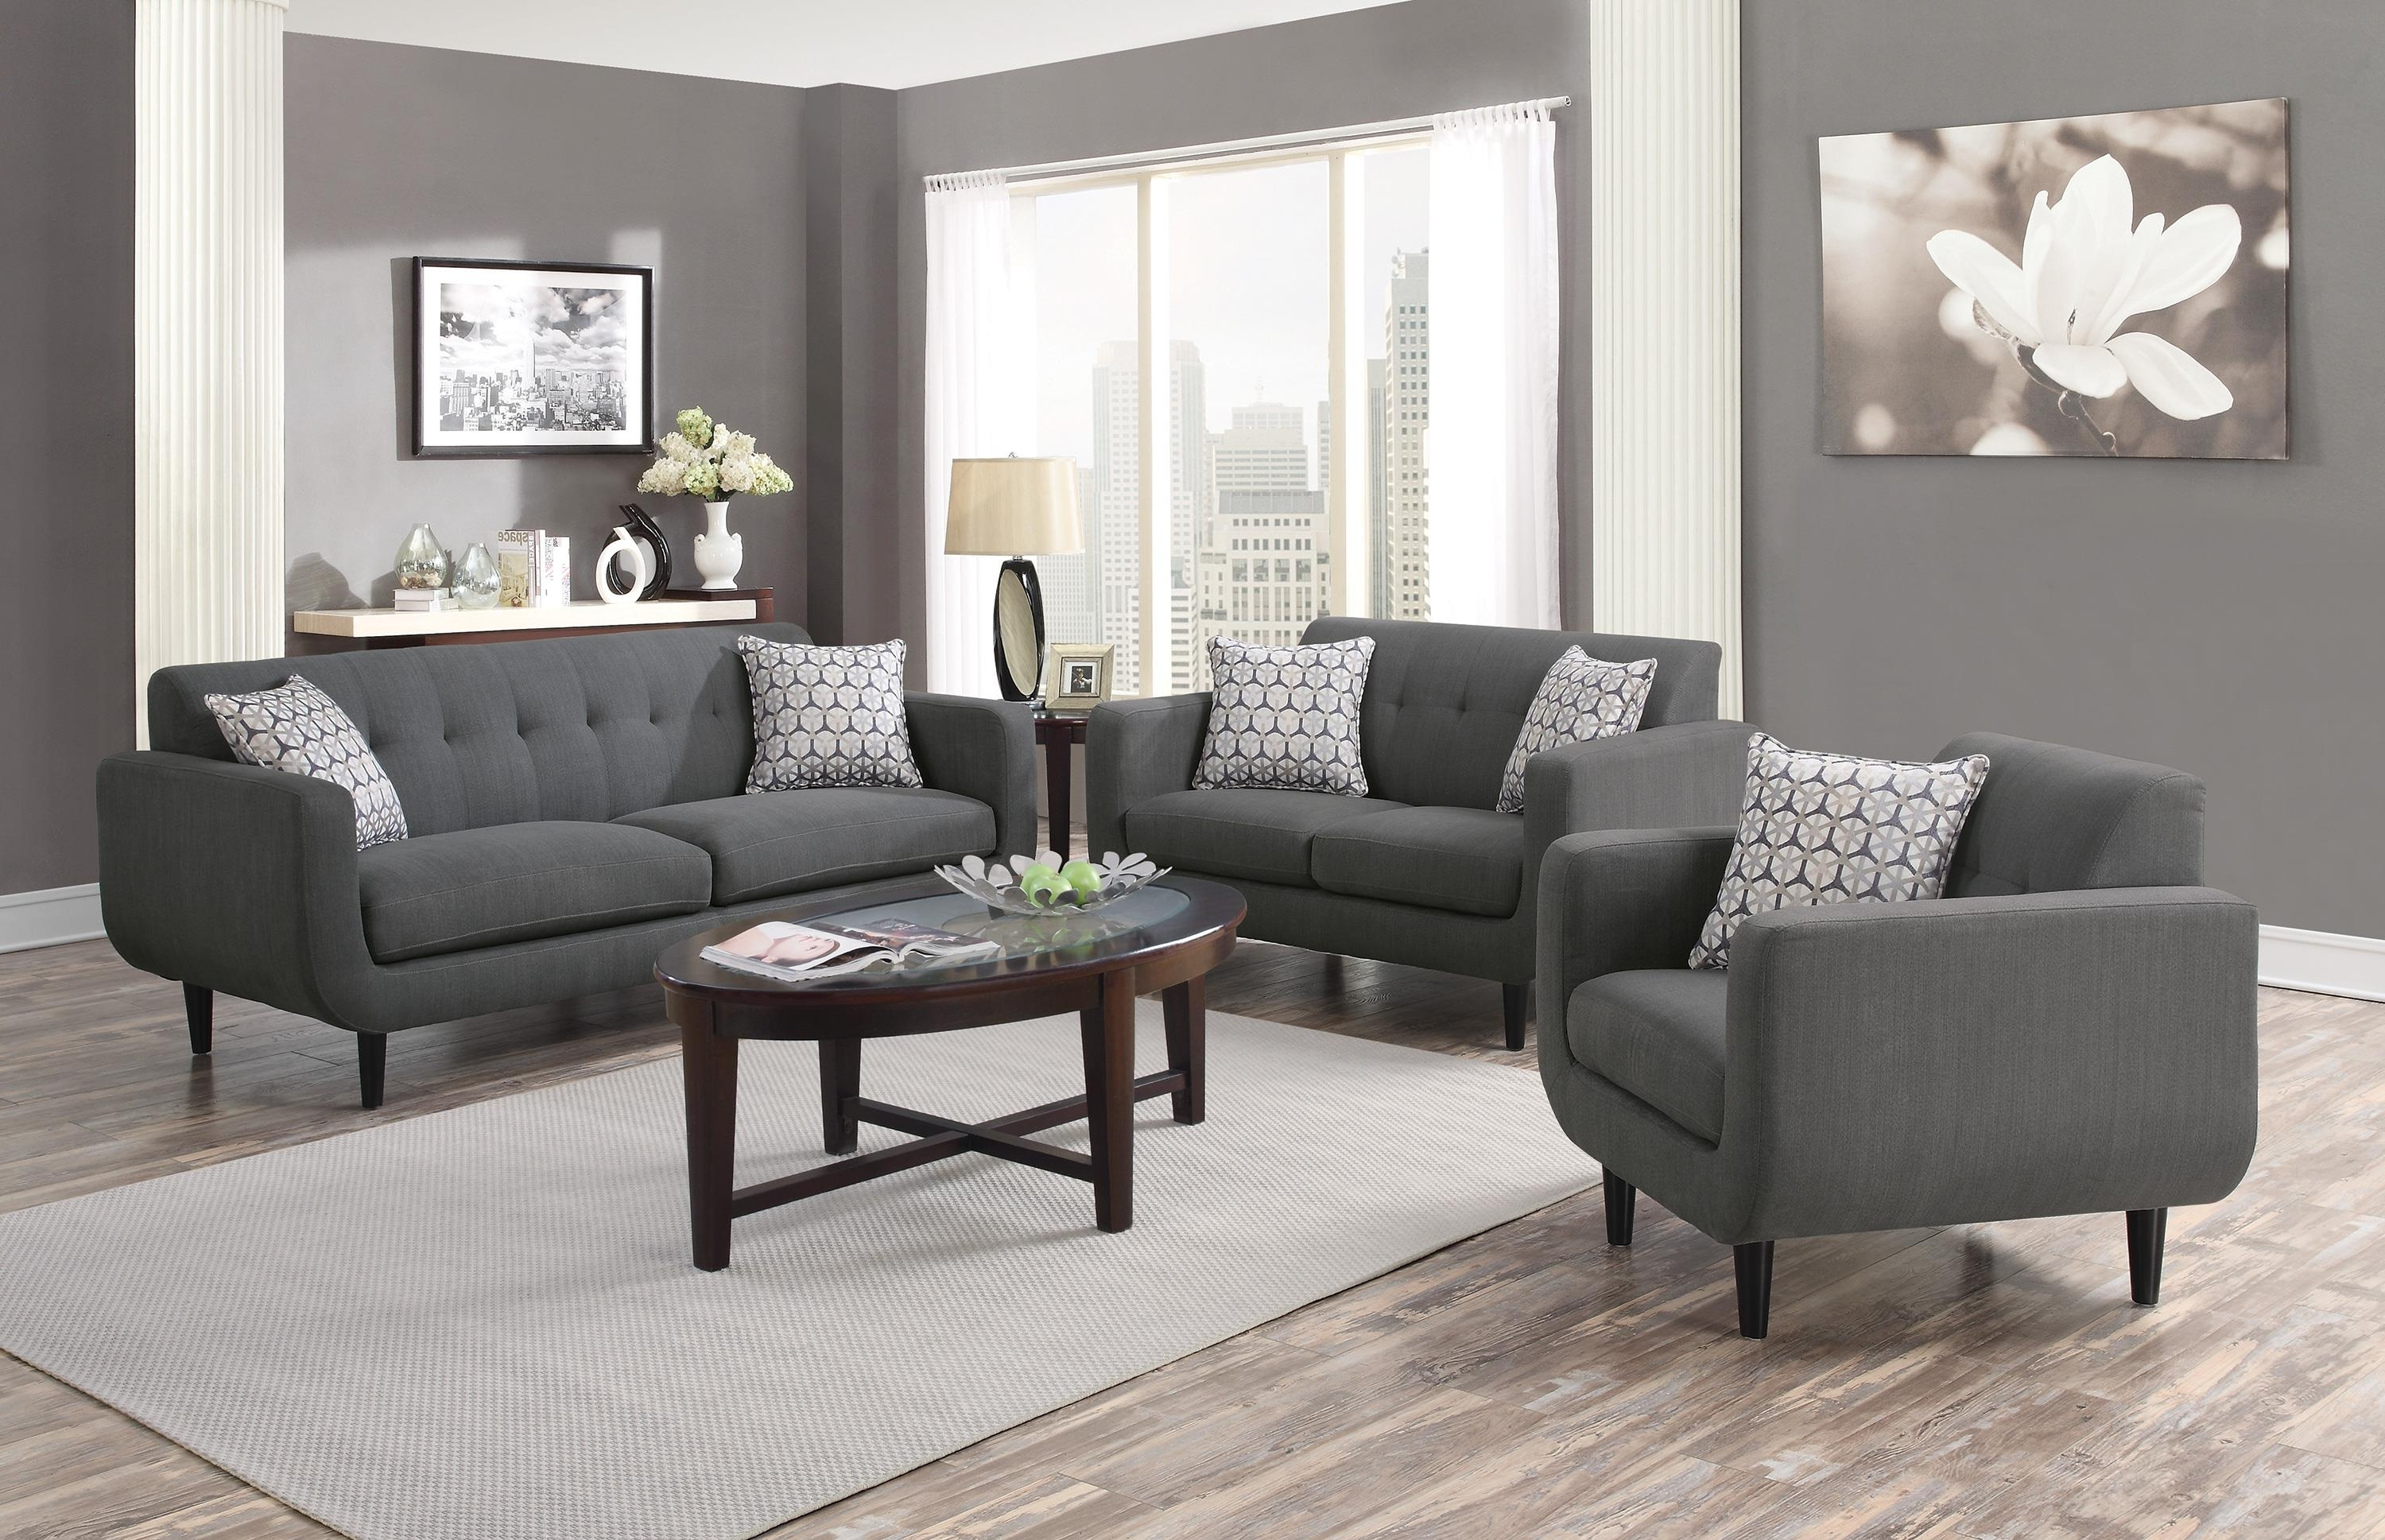 Dallas Texas Sectional Sofas Intended For Famous Coaster Stansall 2Pc Grey Sofa & Loveseat Set Dallas Tx (View 5 of 15)